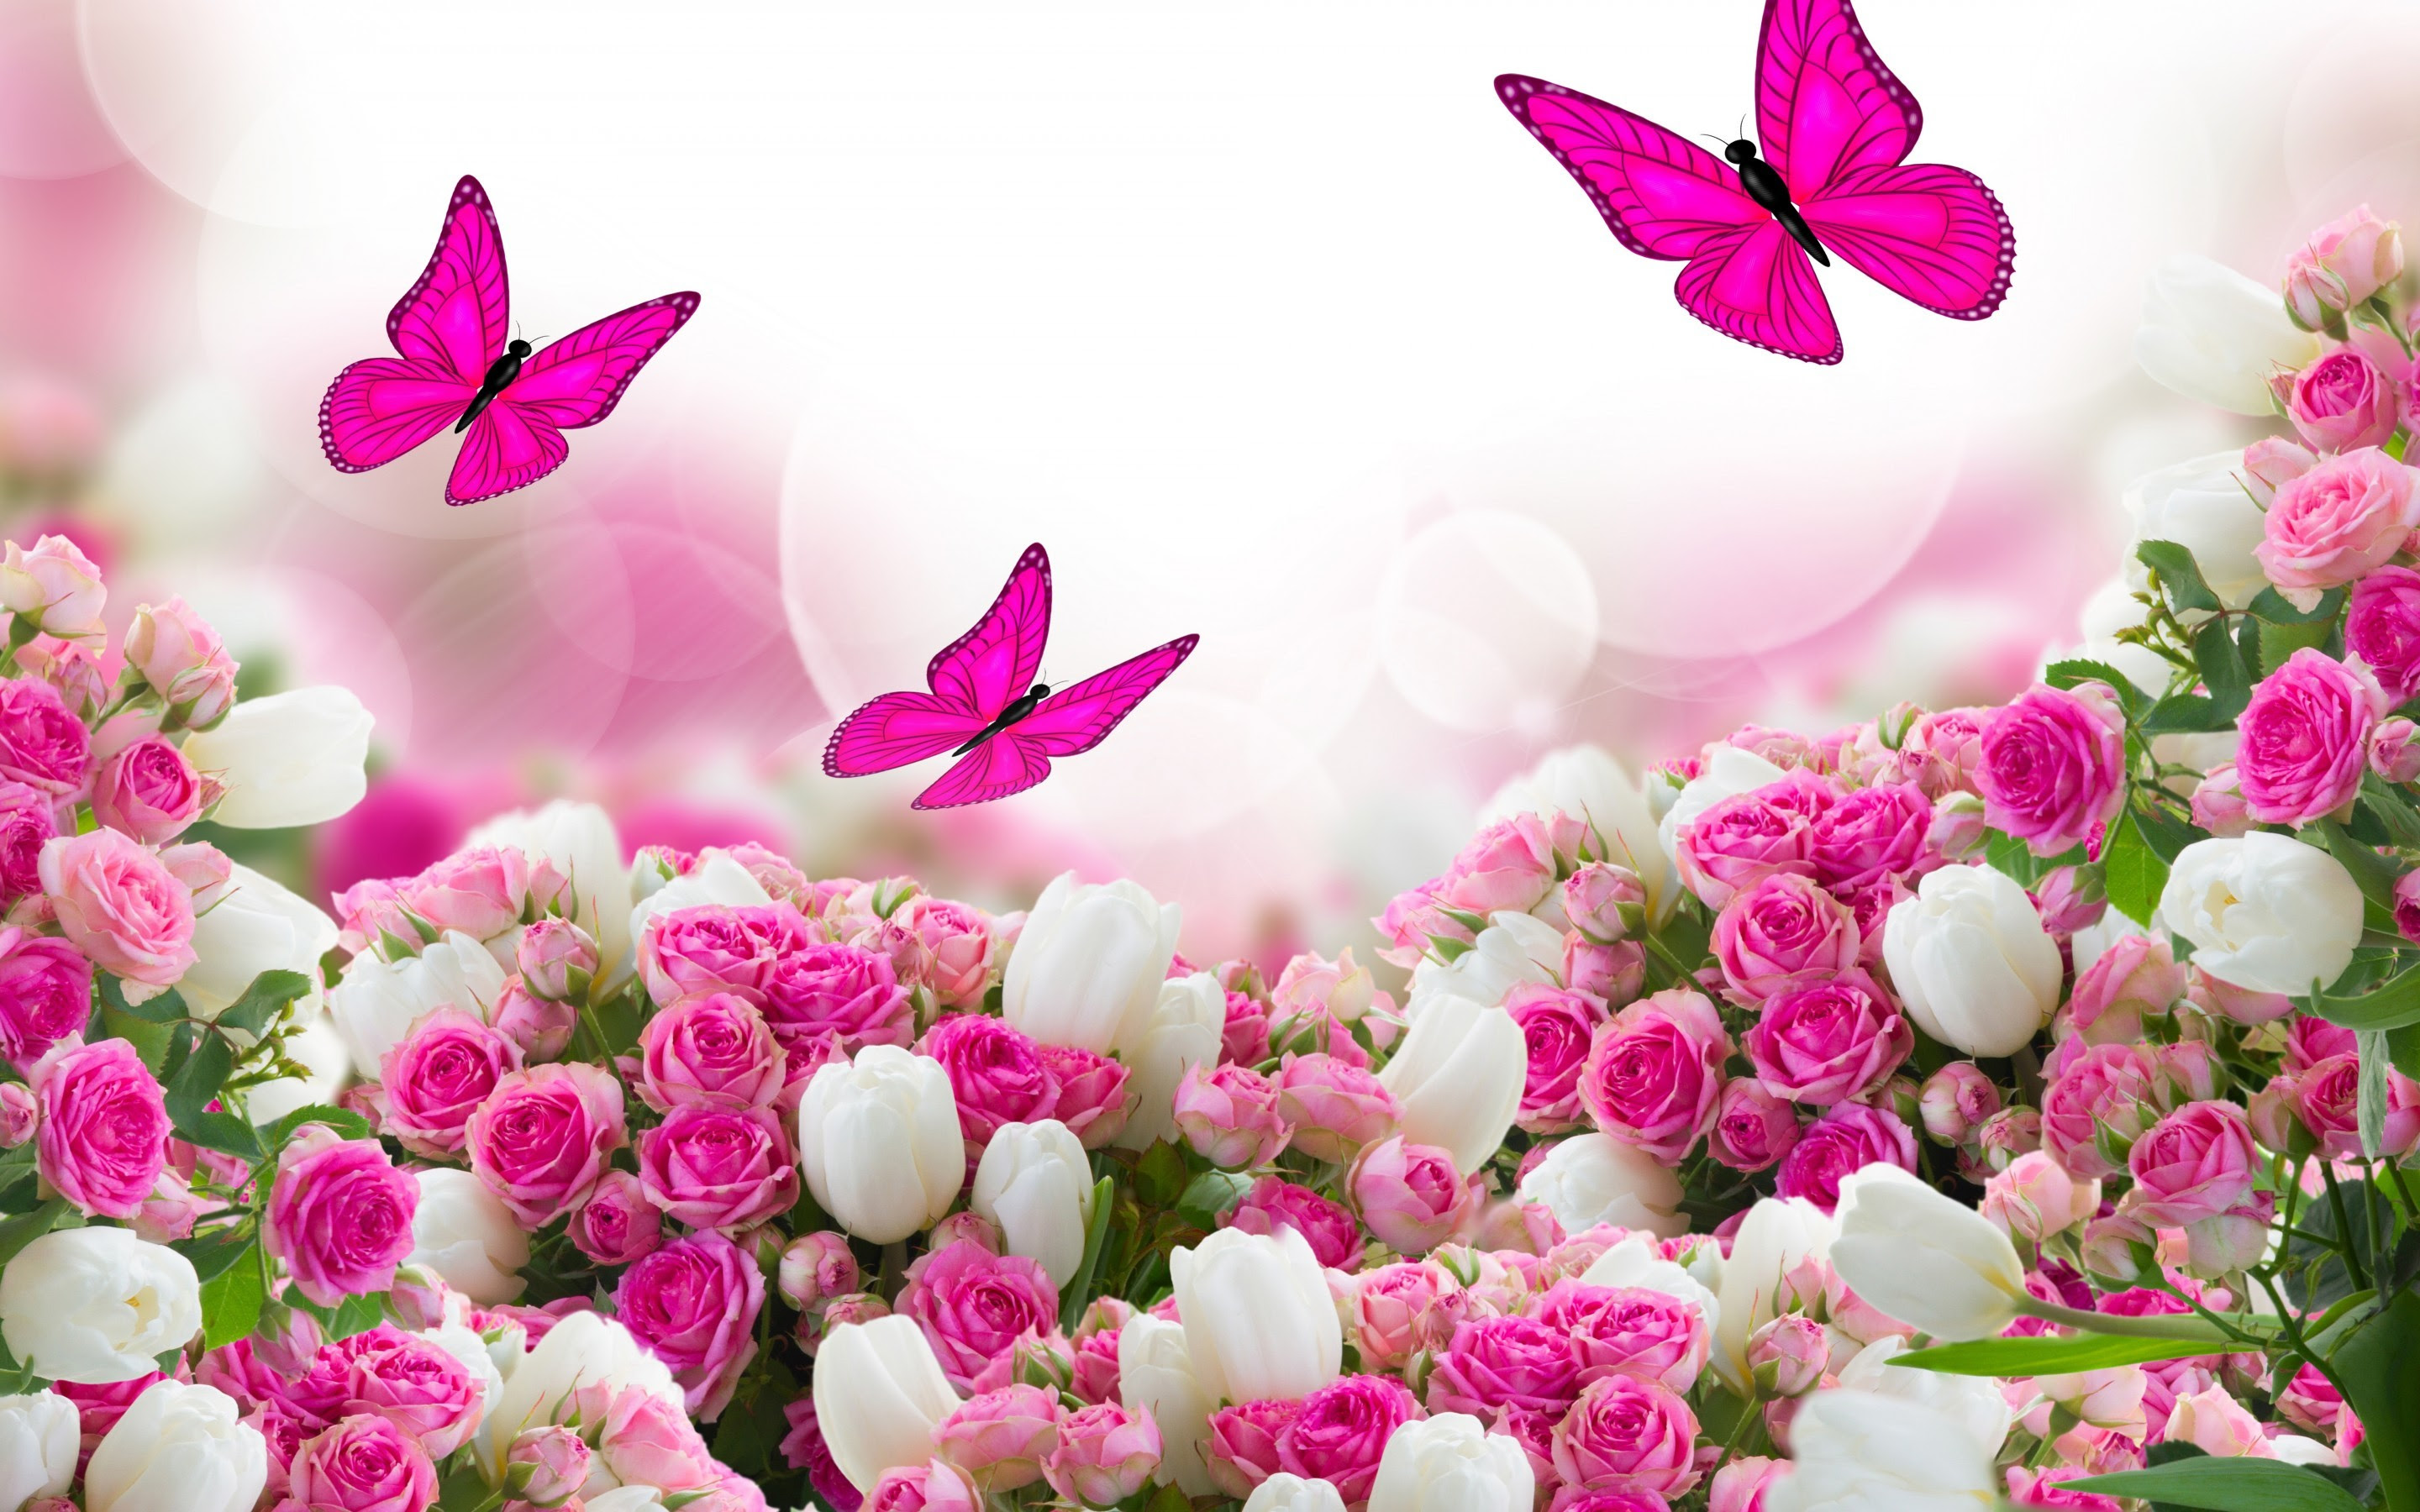 Wallpaper Full Hd Beautiful Flowers